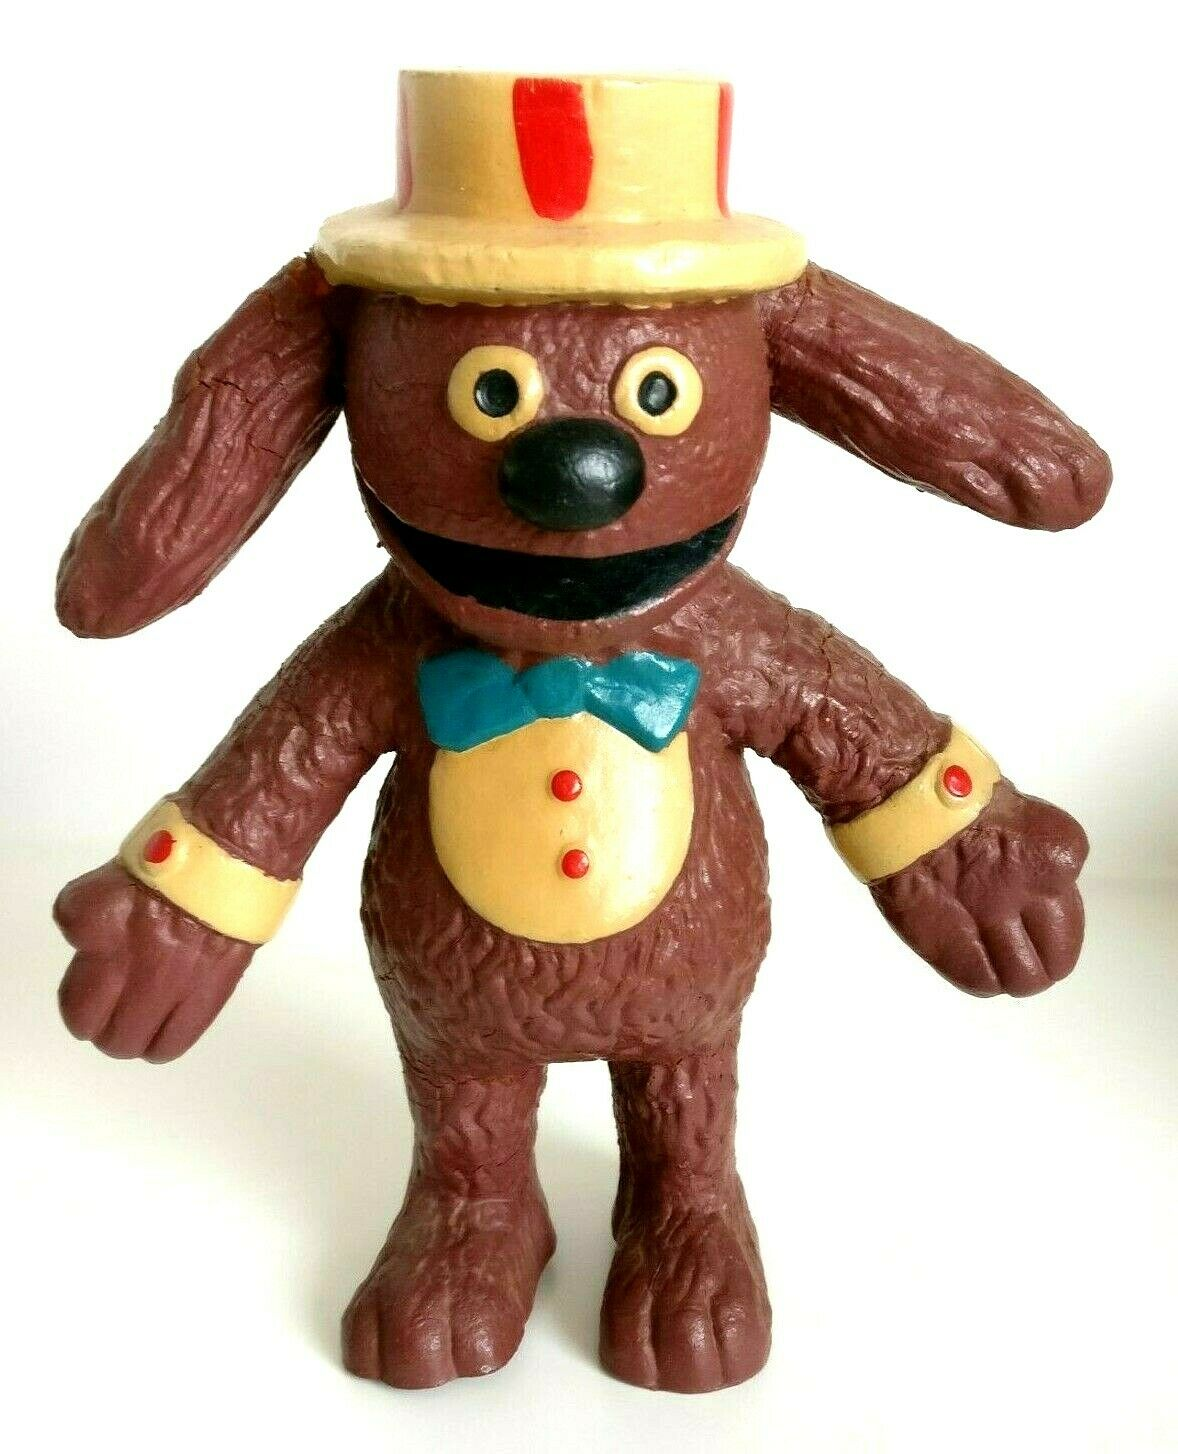 Vintage Muppets Doll - Rowlf   Rolf The Dog 1977 Toy - Bendy Toy